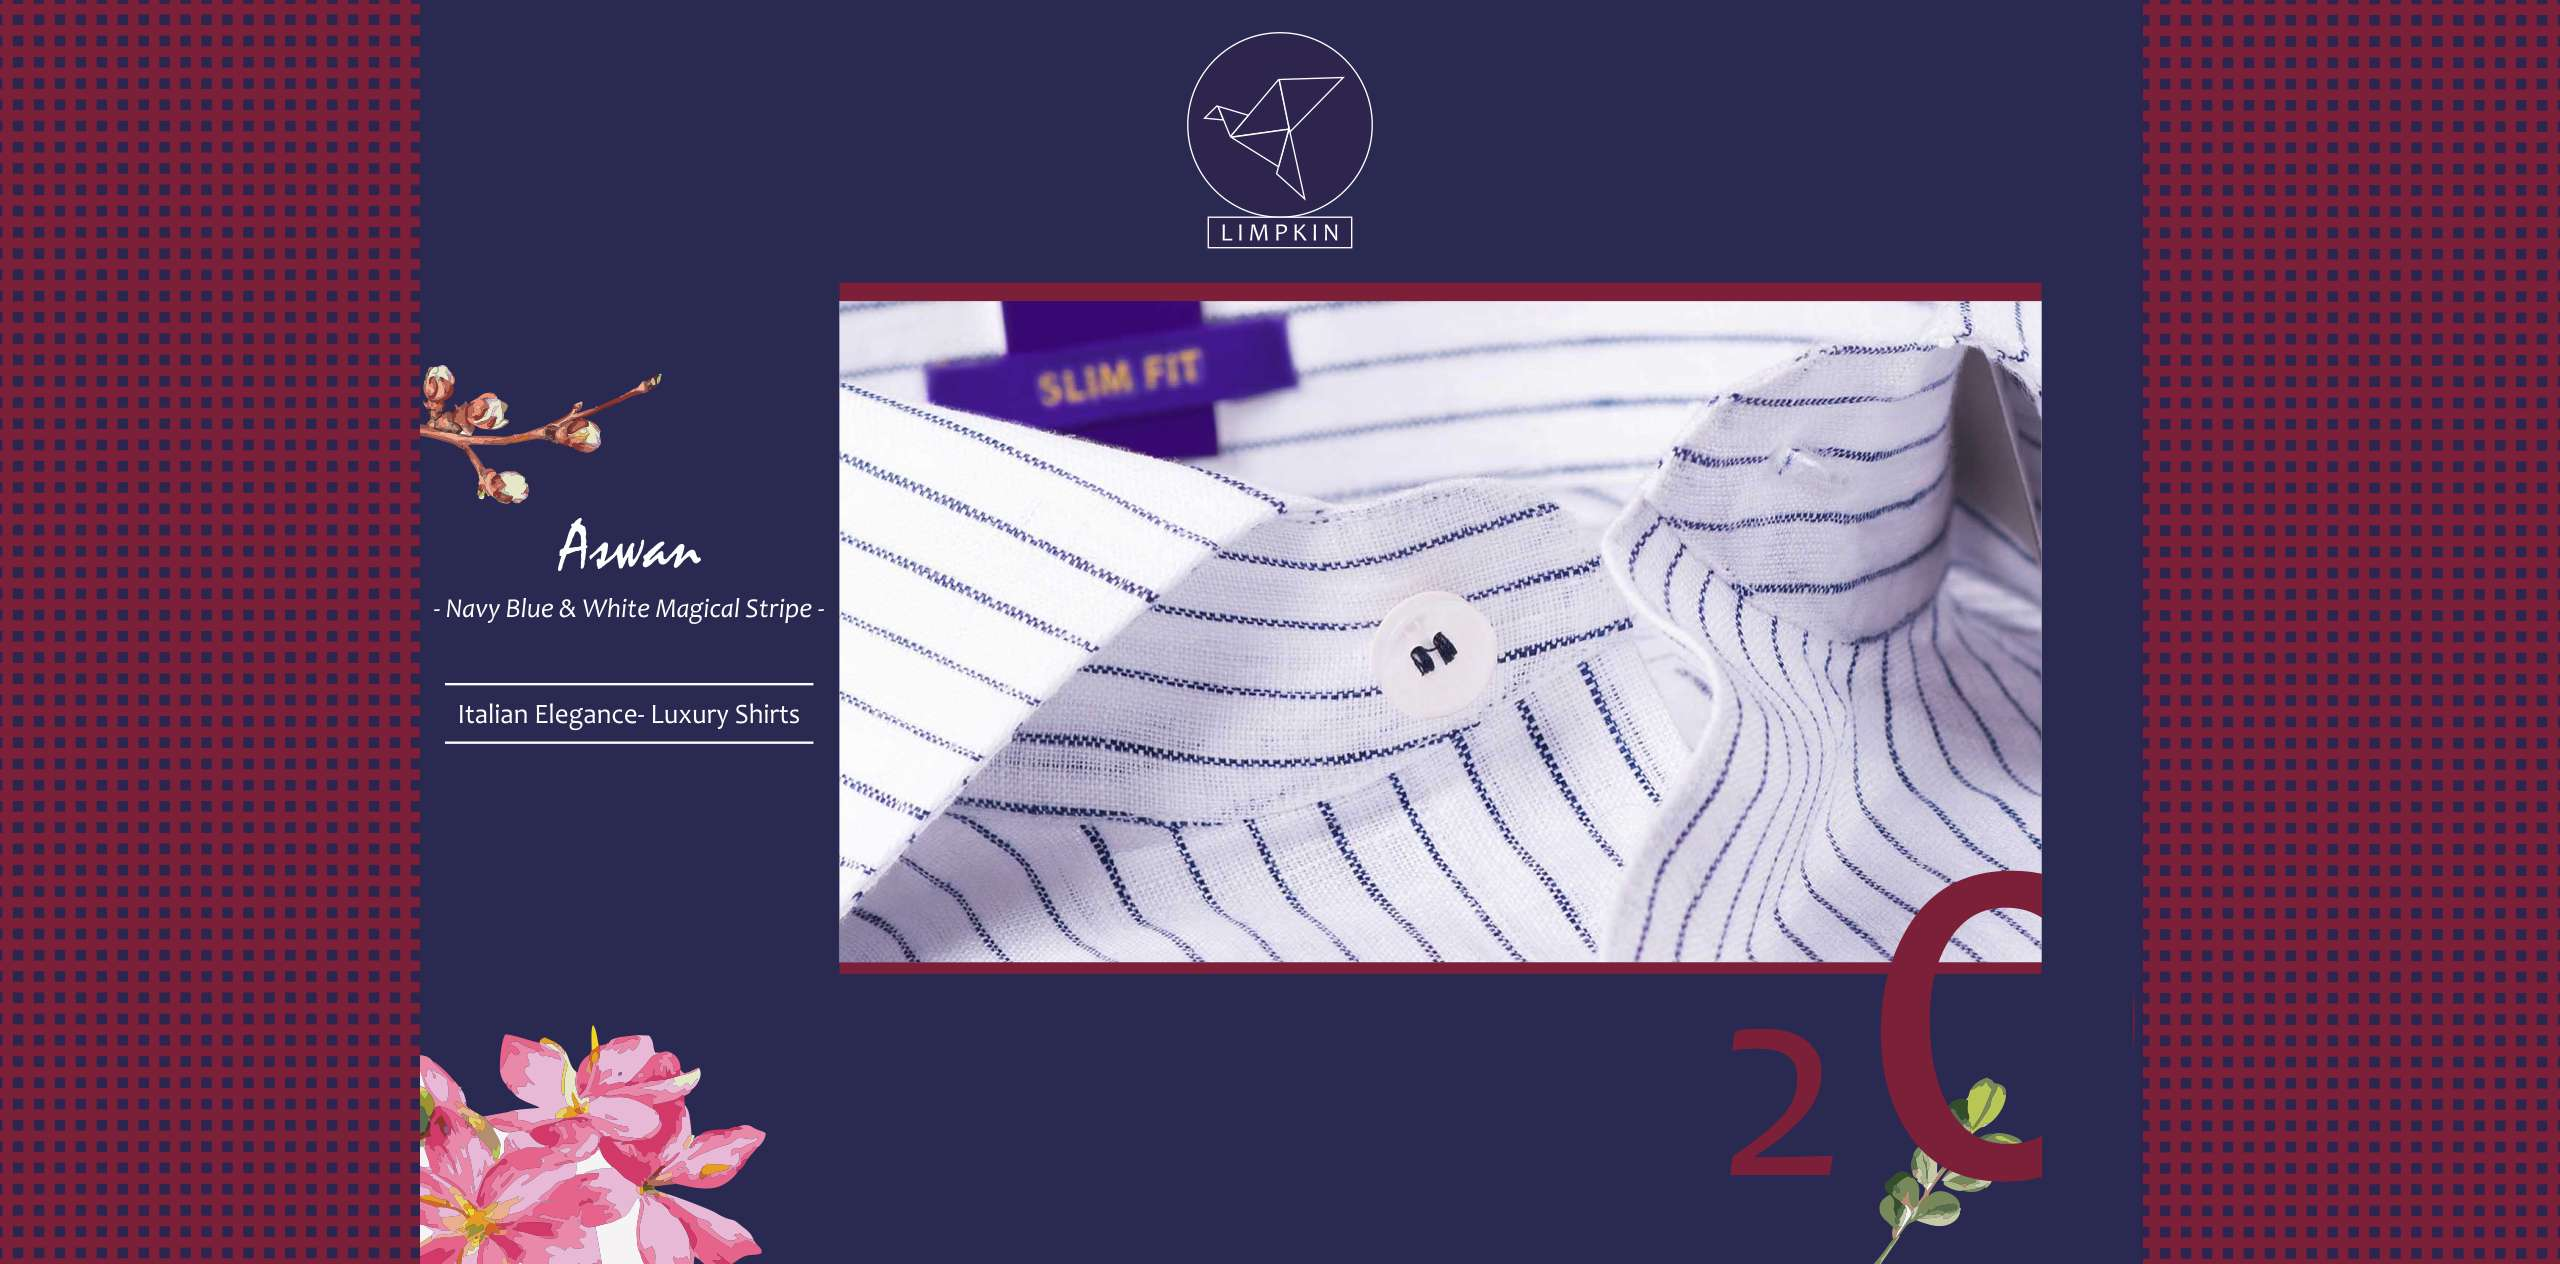 Aswan- Navy Blue & White Magical Stripe- 66's Lea Pure Italian Linen- Delivery from 28th March - Banner